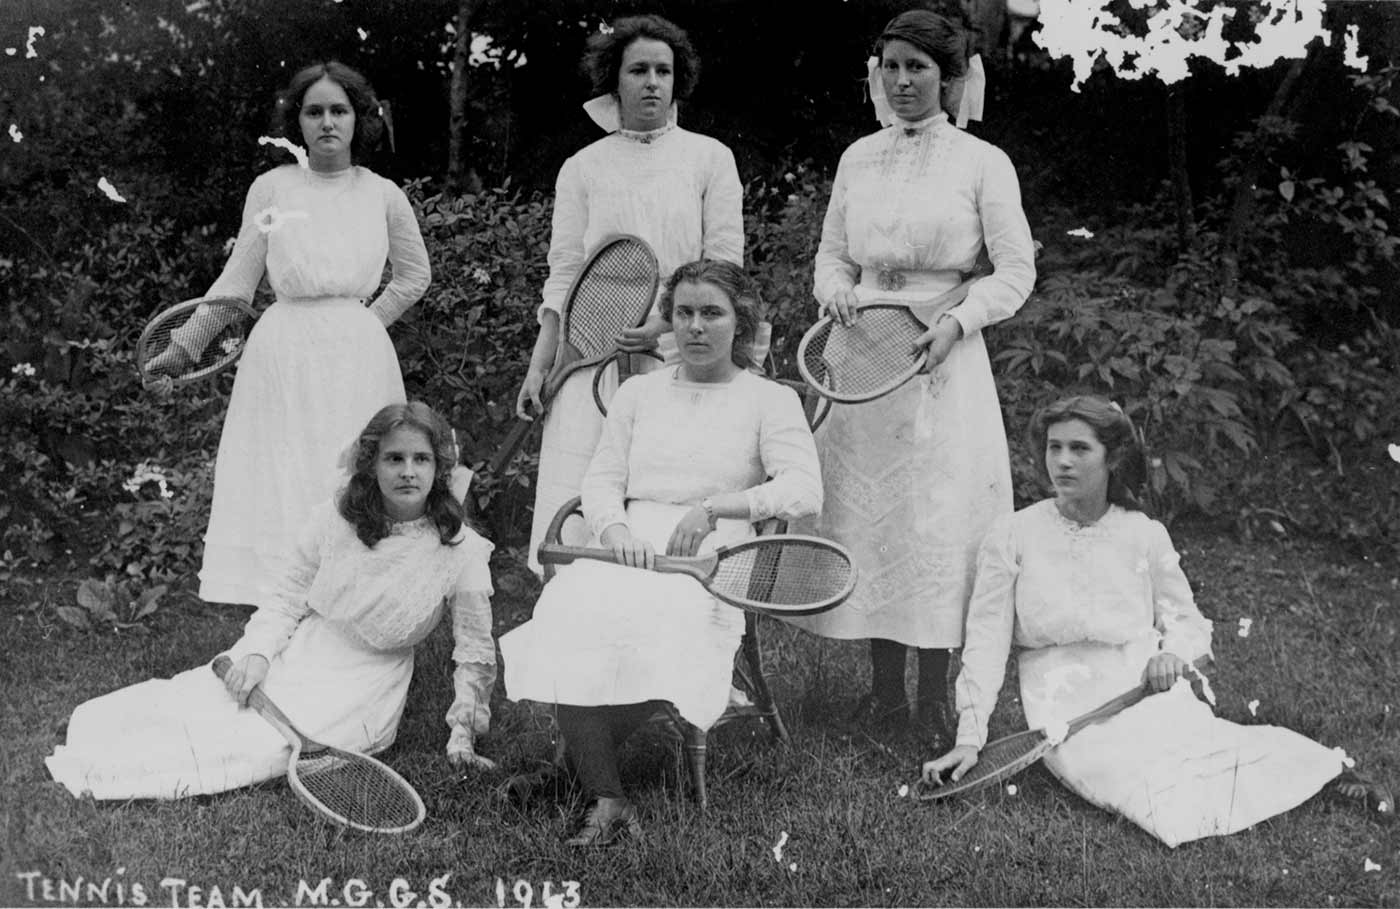 A black and white photo of a group of six women in tennis dresses and holding tennis racquets.